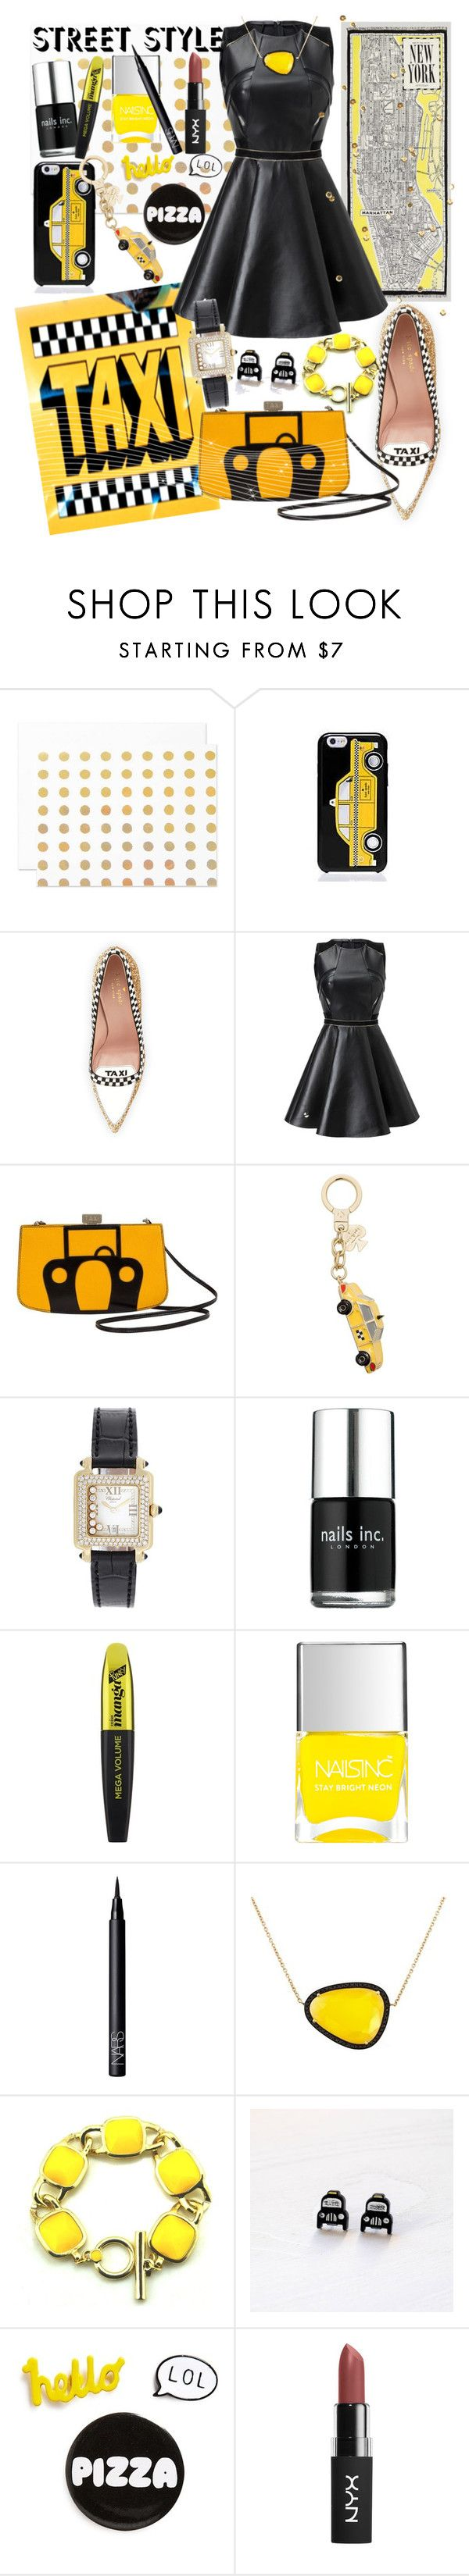 """Pizza, Taxis, Fashion Week"" by nikkimmorrison ❤ liked on Polyvore featuring TAXI, The Pink Orange, Kate Spade, Hermès, Chopard, Nails Inc., L'Oréal Paris, NARS Cosmetics, Christina Debs and Finest Imaginary"